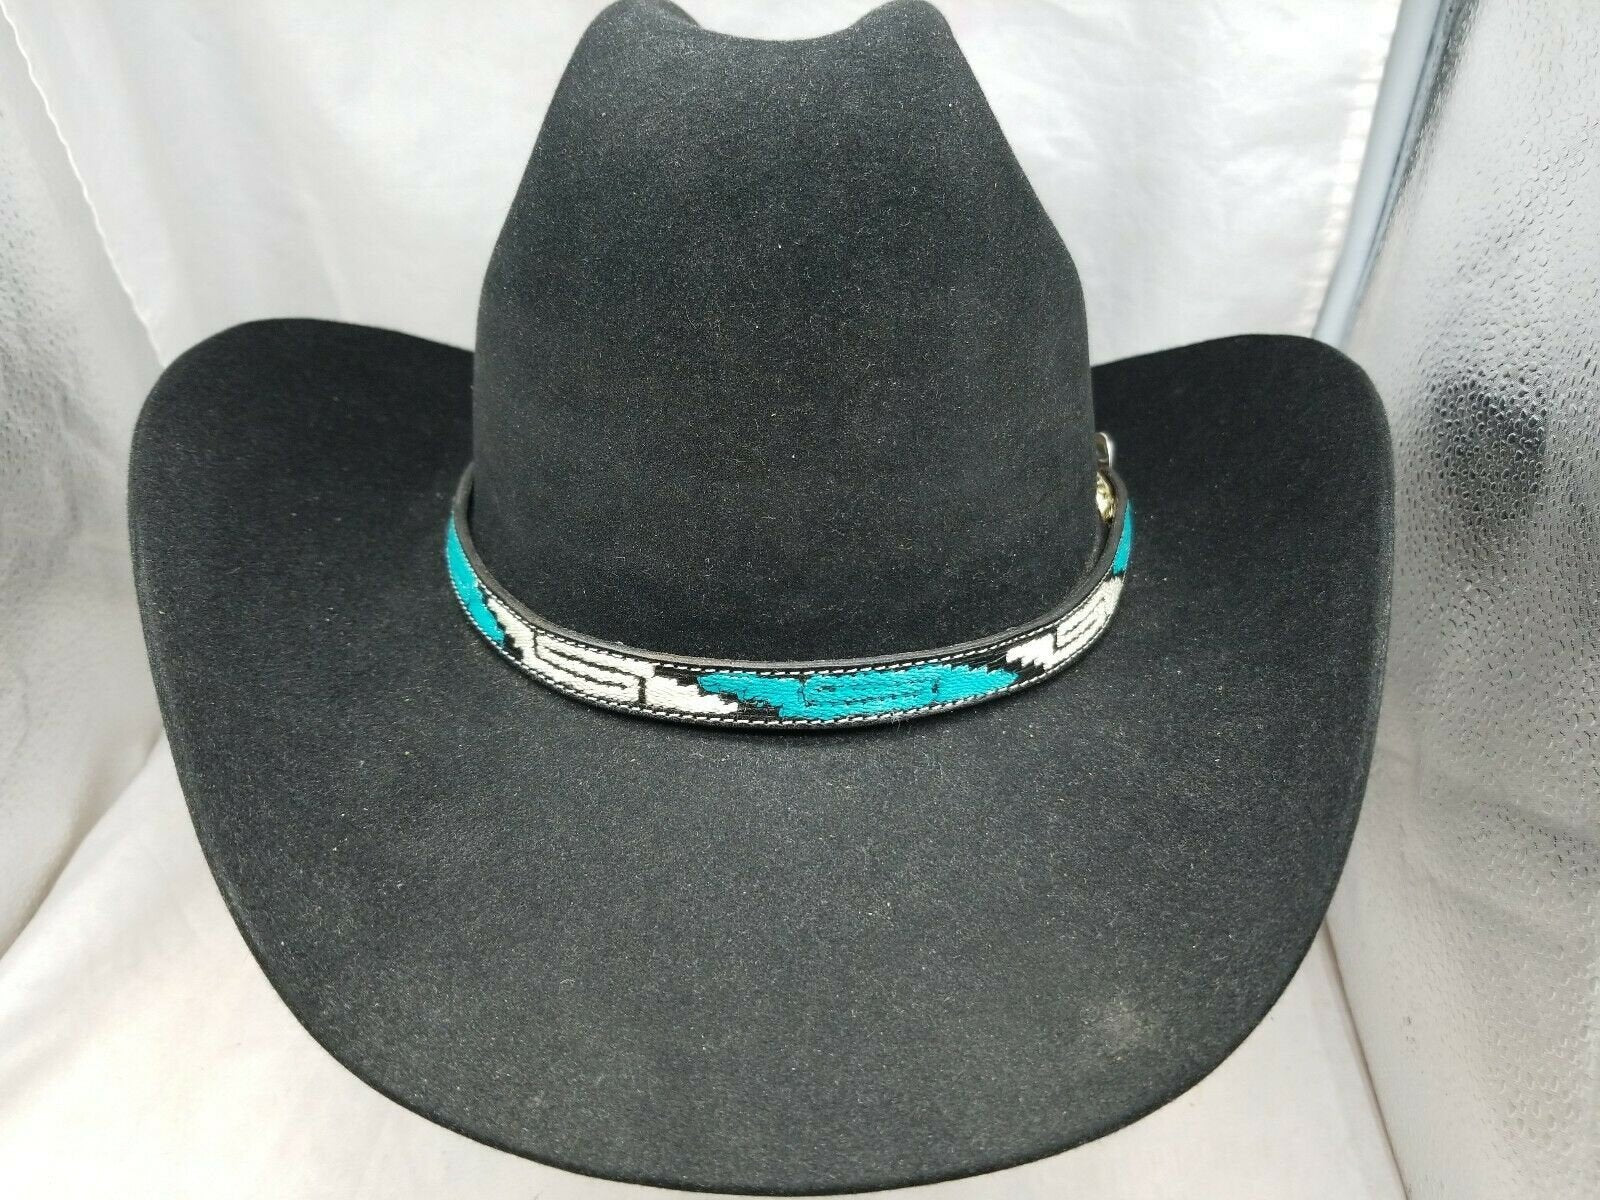 Silver EMBROIDERY and 3-piece Shiny Silver Buckle Set Western Cowgirl Hats Cowboy Hat Band Black HATBAND with Turquoise